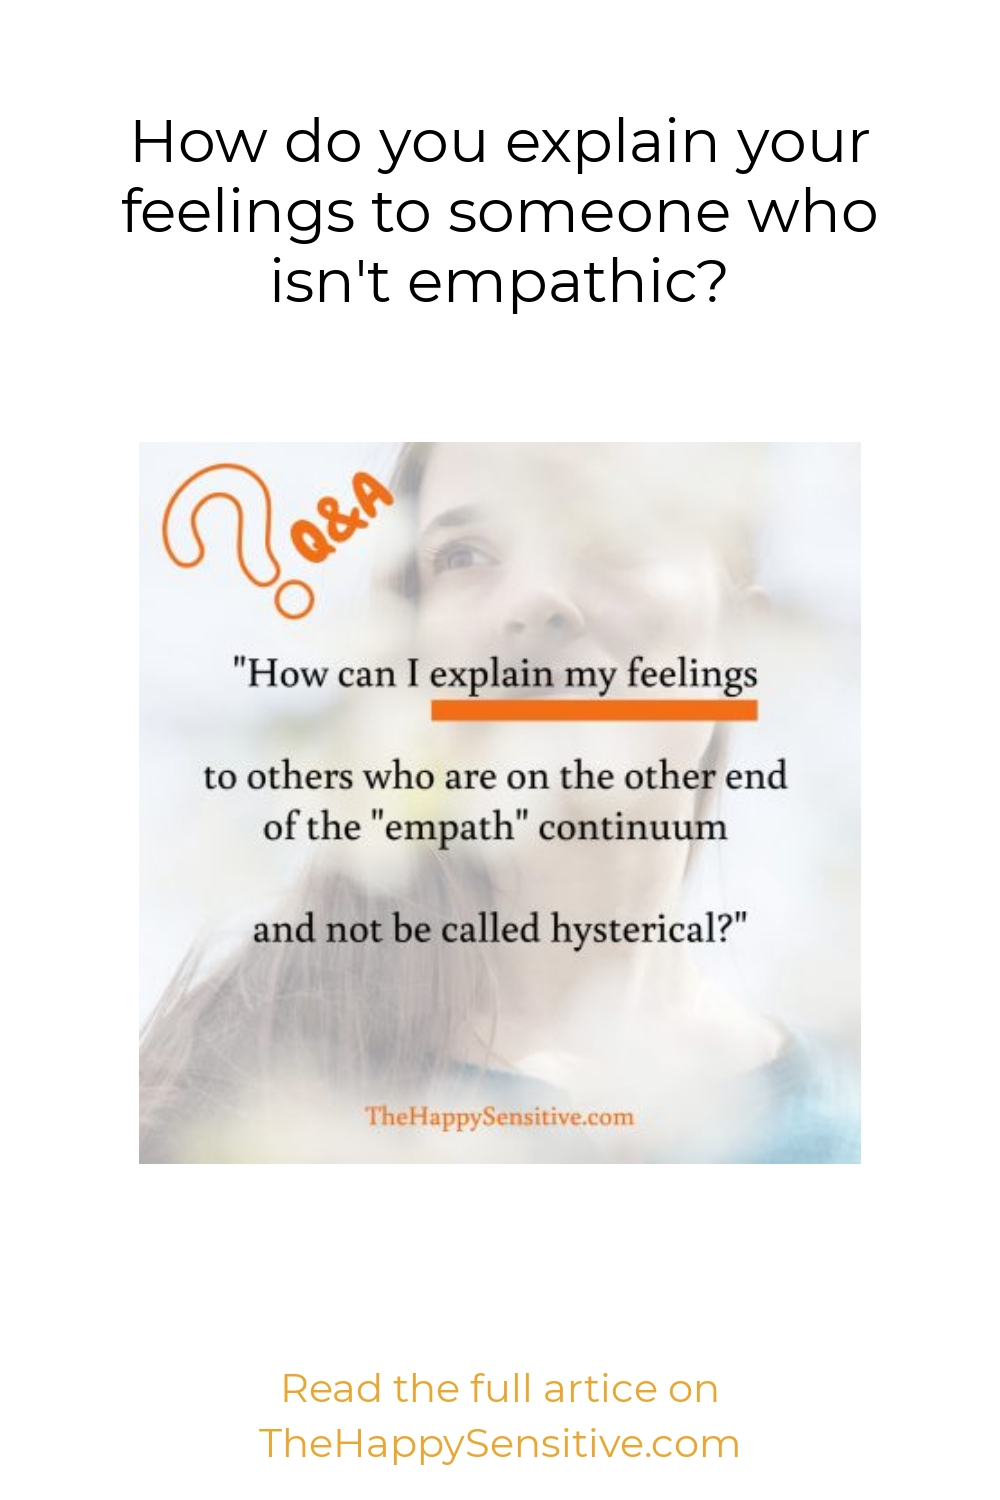 How do you explain your feelings to someone who isn't empathic?